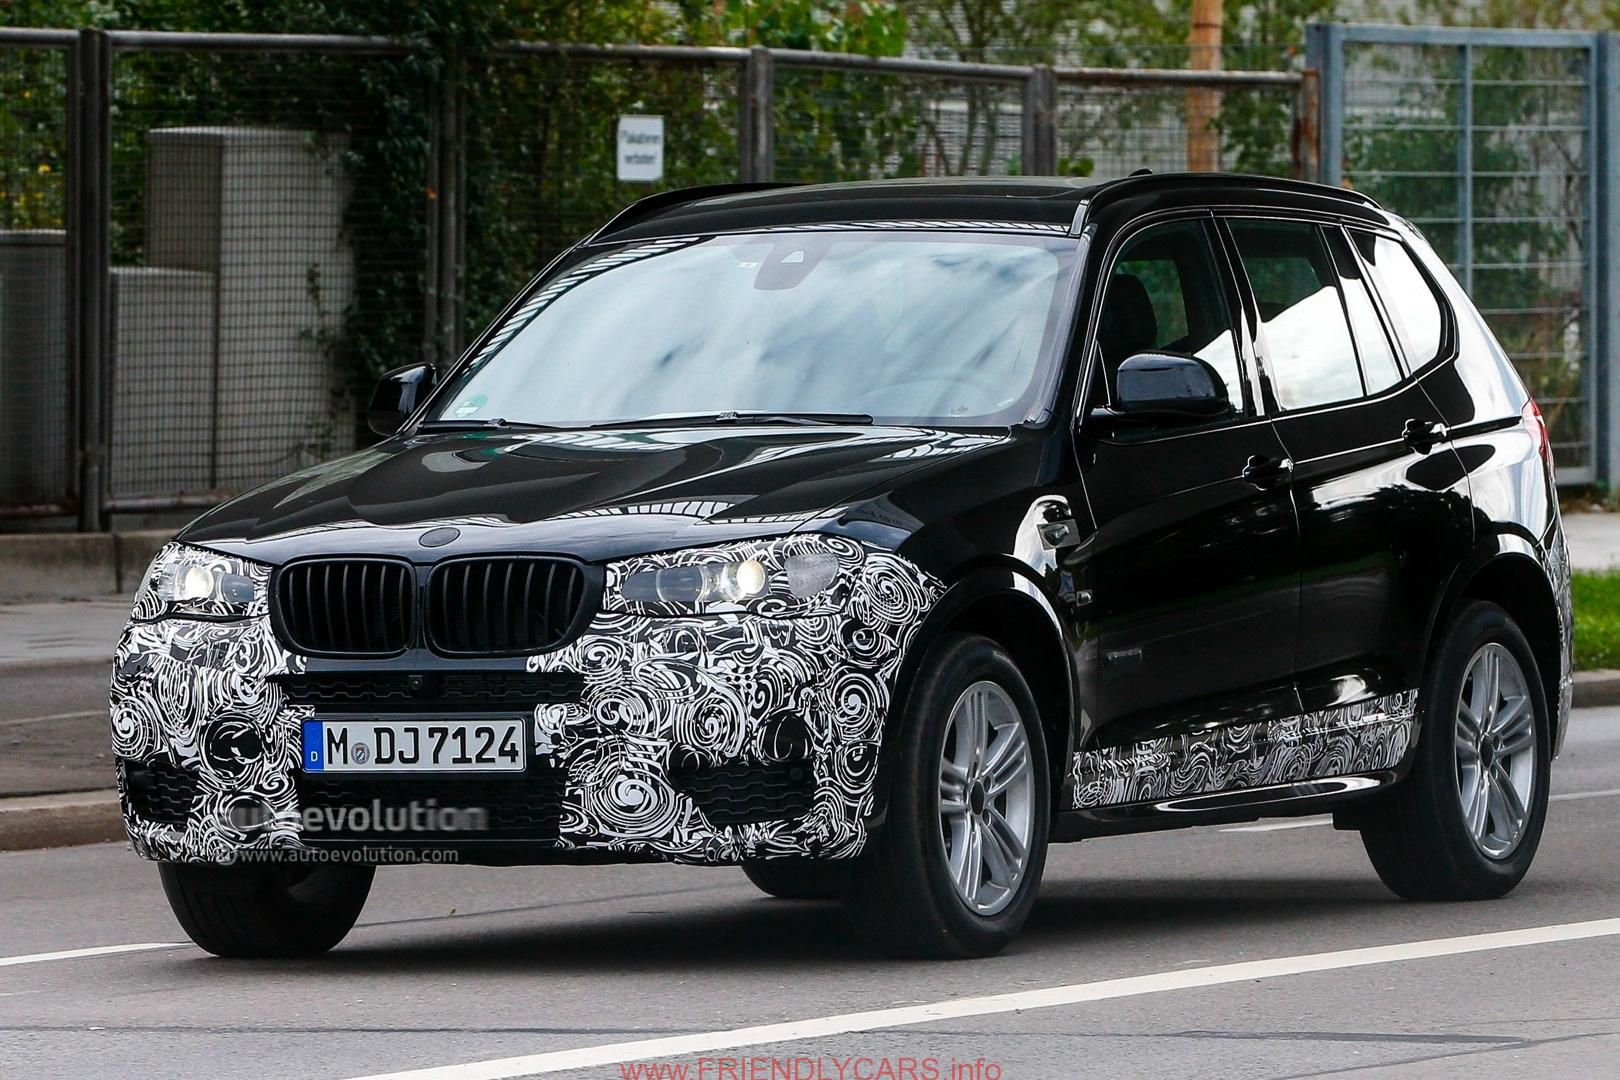 Awesome bmw x3 2014 m sport car images hd spyshots 2014 bmw f25 x3 lci m